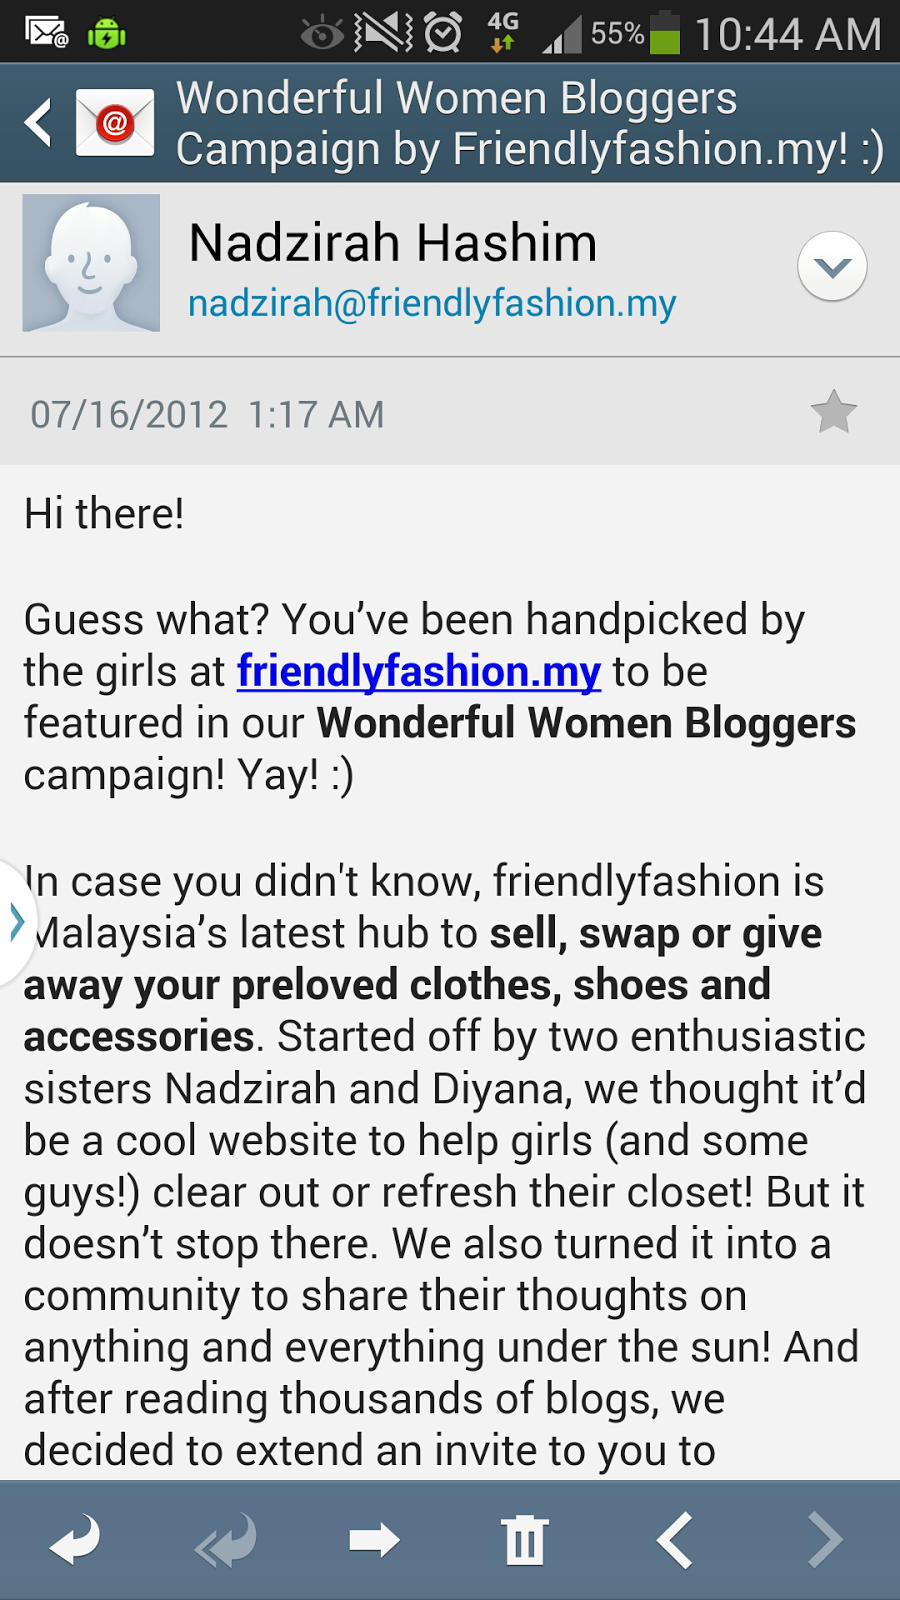 invitation by Friendly Fashion to become official blogger